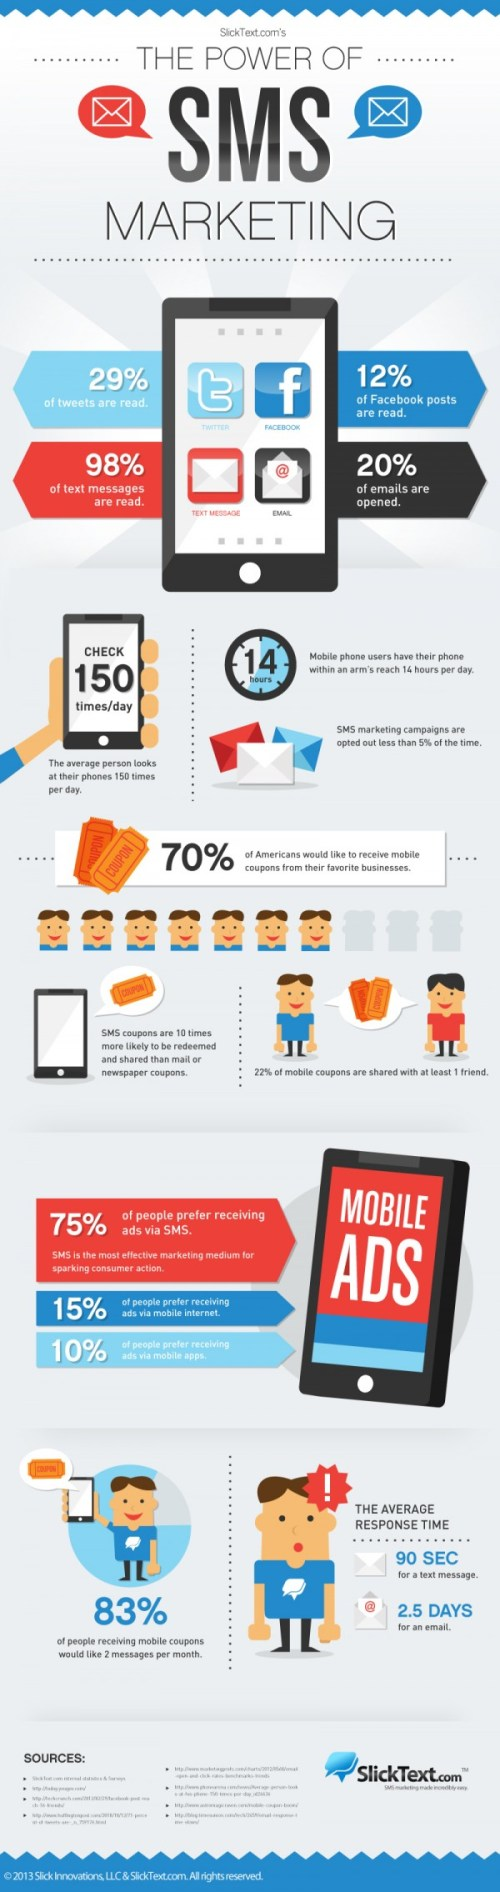 sms-marketing-infographic-600x2271